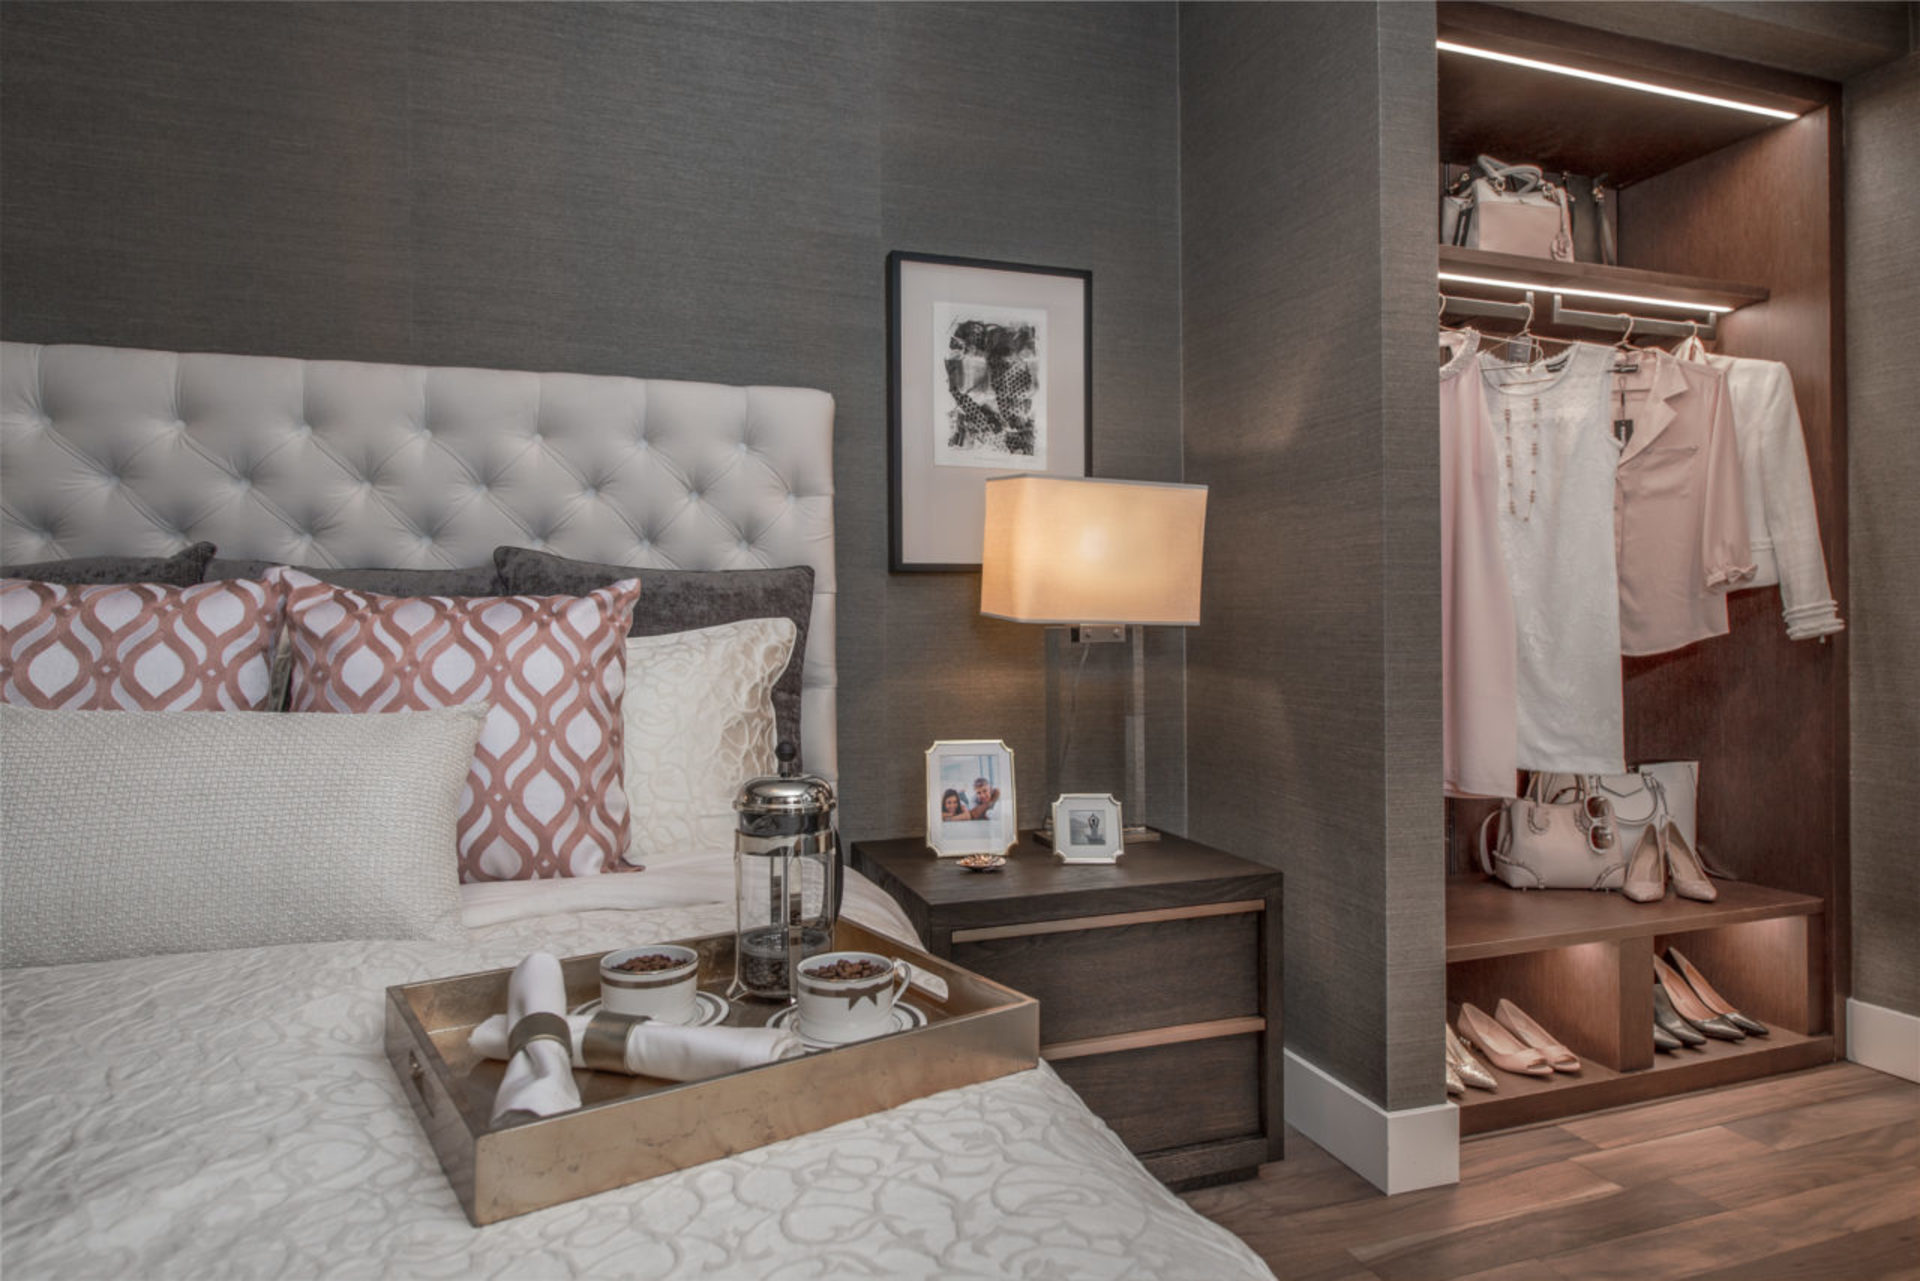 park-west-bedroom-and-closet at Park West at Lions Gate Village (1633 Capilano Road, North Vancouver)